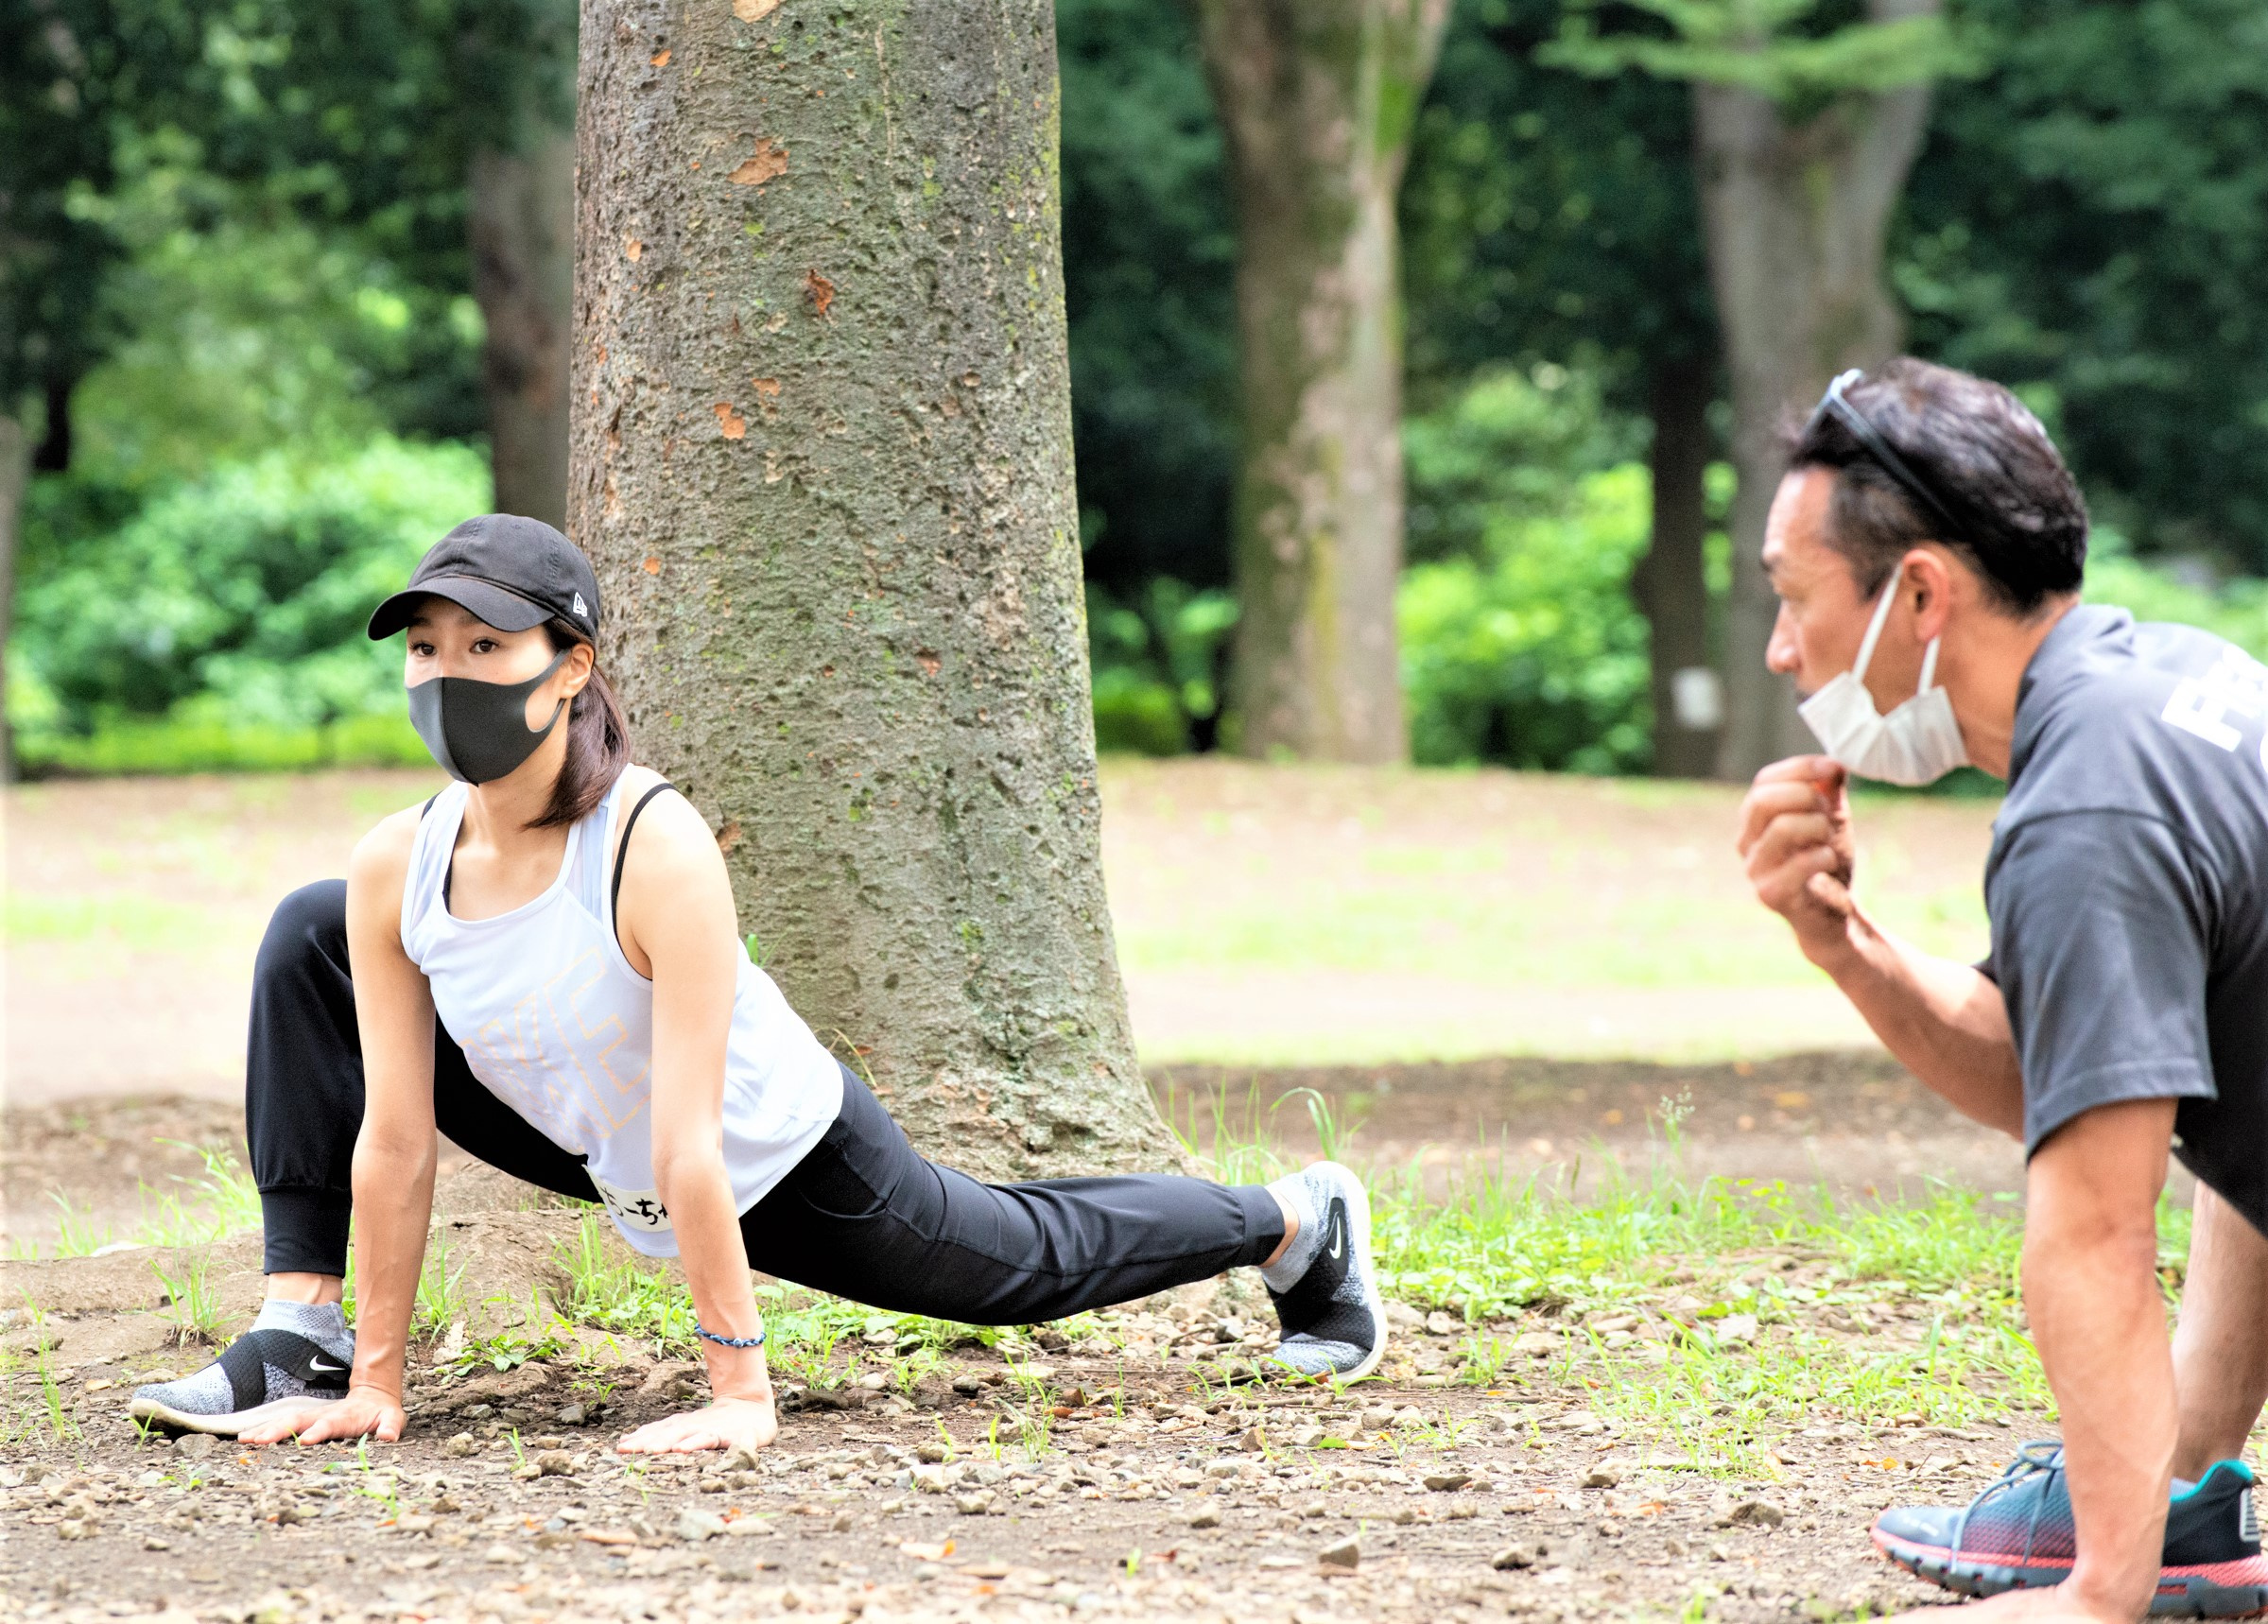 <small>【PR】</small><br>「FITNESS CAMP<small>(フィットネス キャンプ)</small>」<br>認定コーチ 養成講座 10.11開催<br>受講者募集中です!